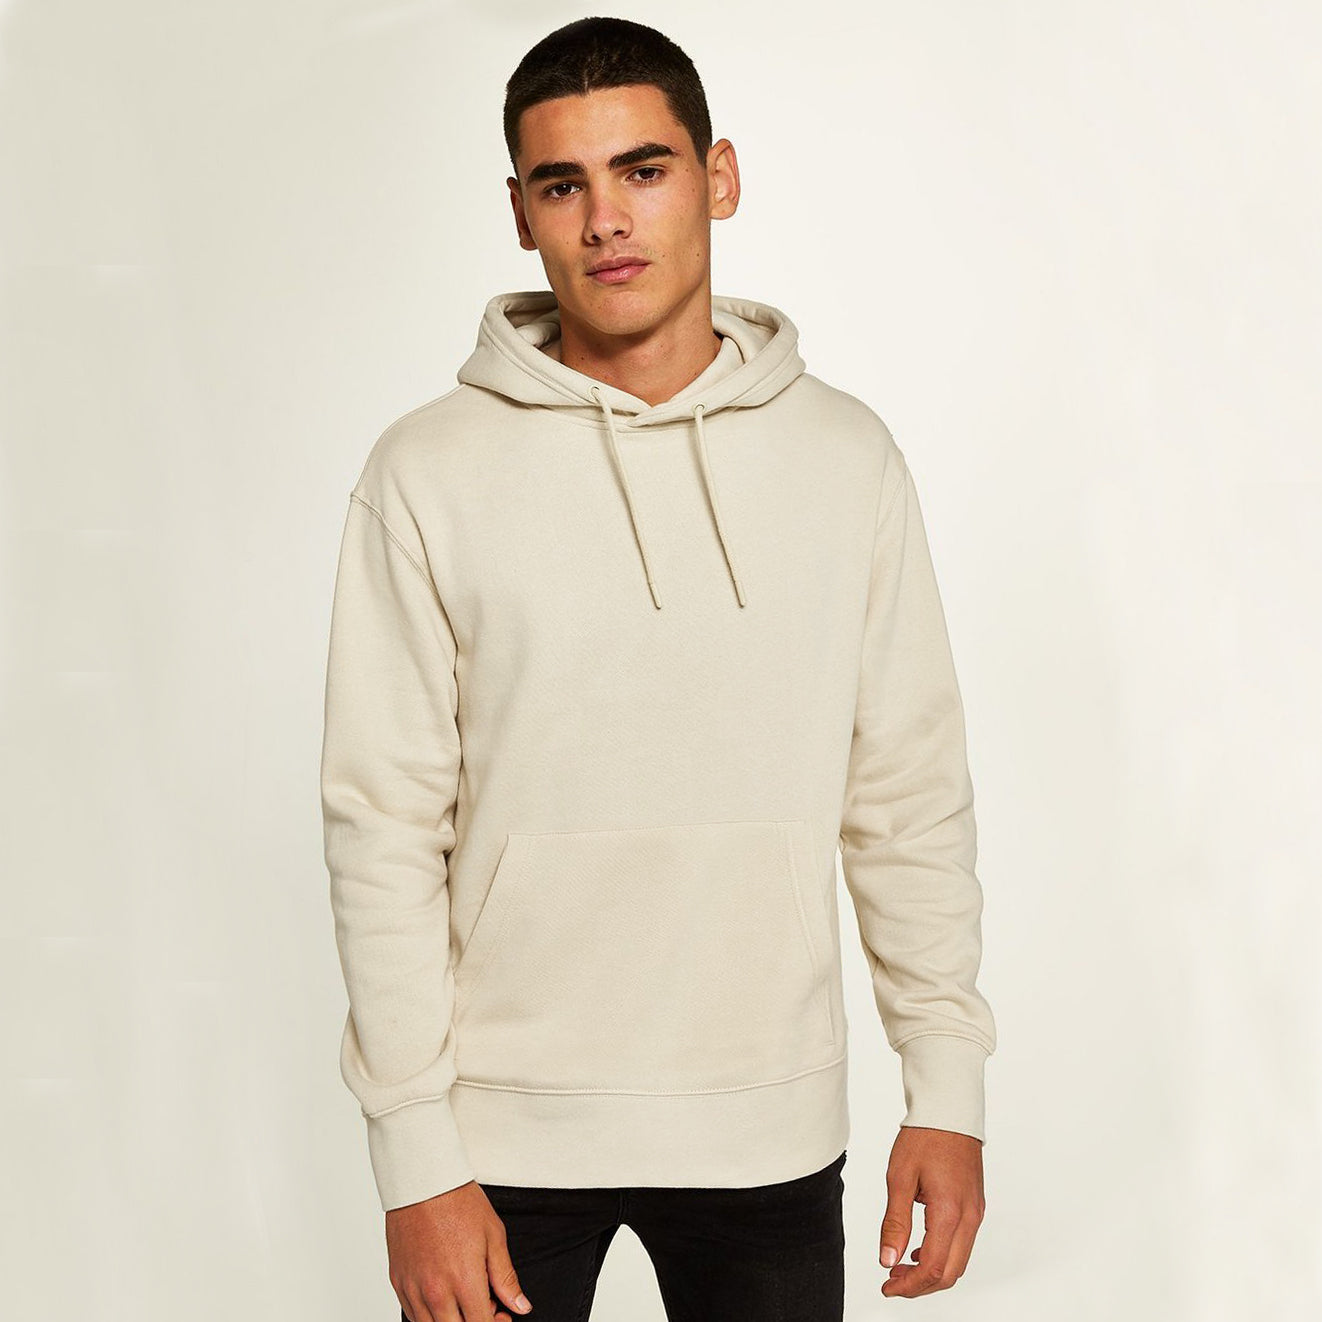 F&F Pullover Fleece Hoodie For Men-Skin-BE6205